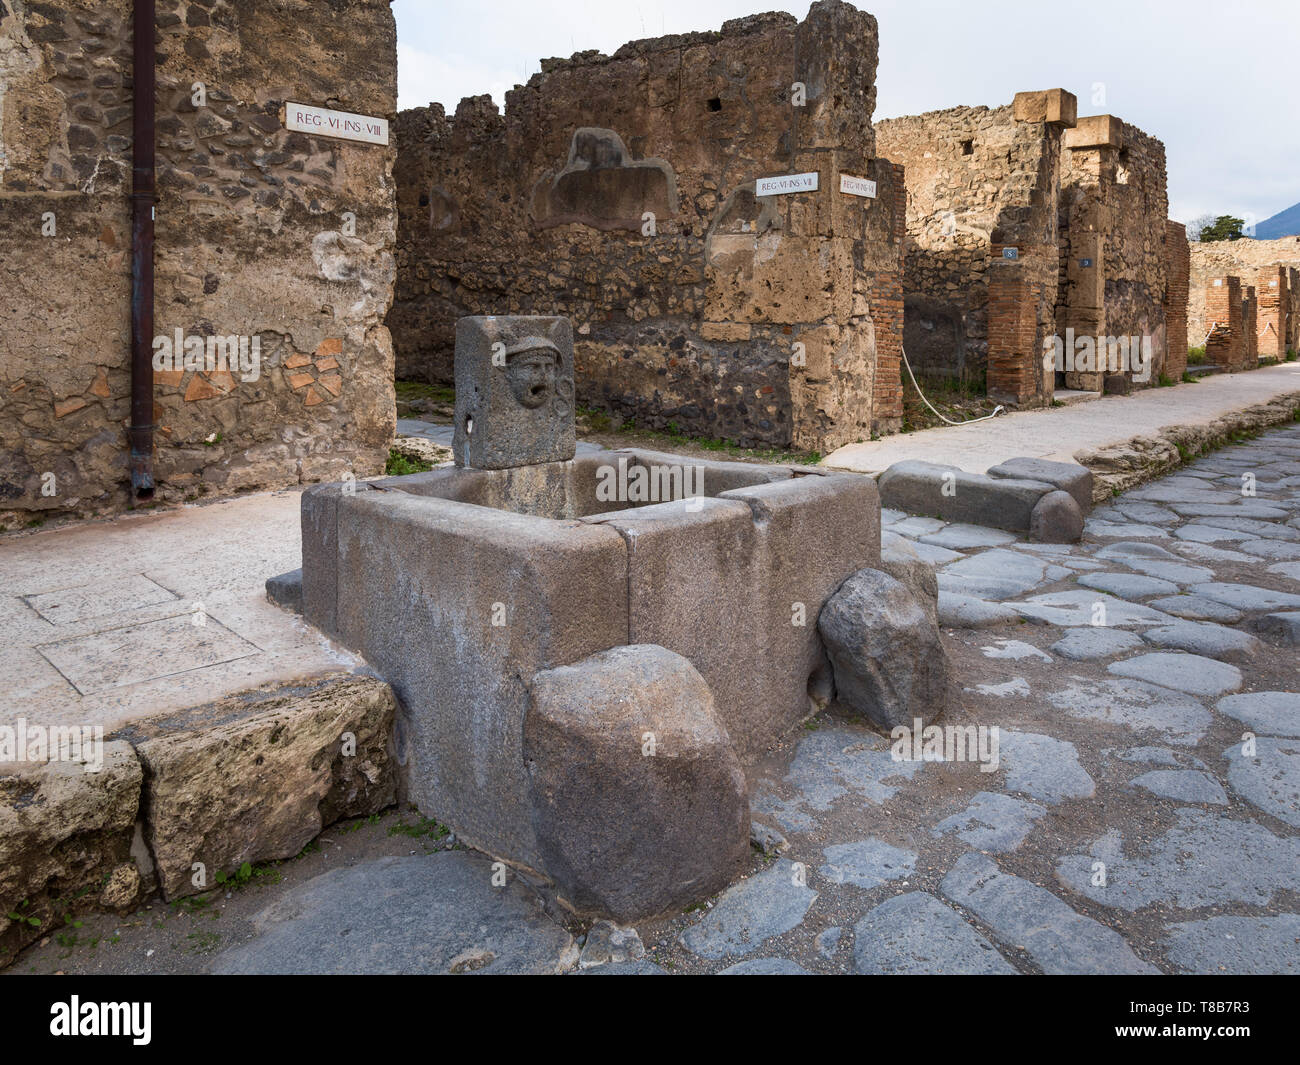 Public water fountain, streets of Pompeii, Italy - Stock Image